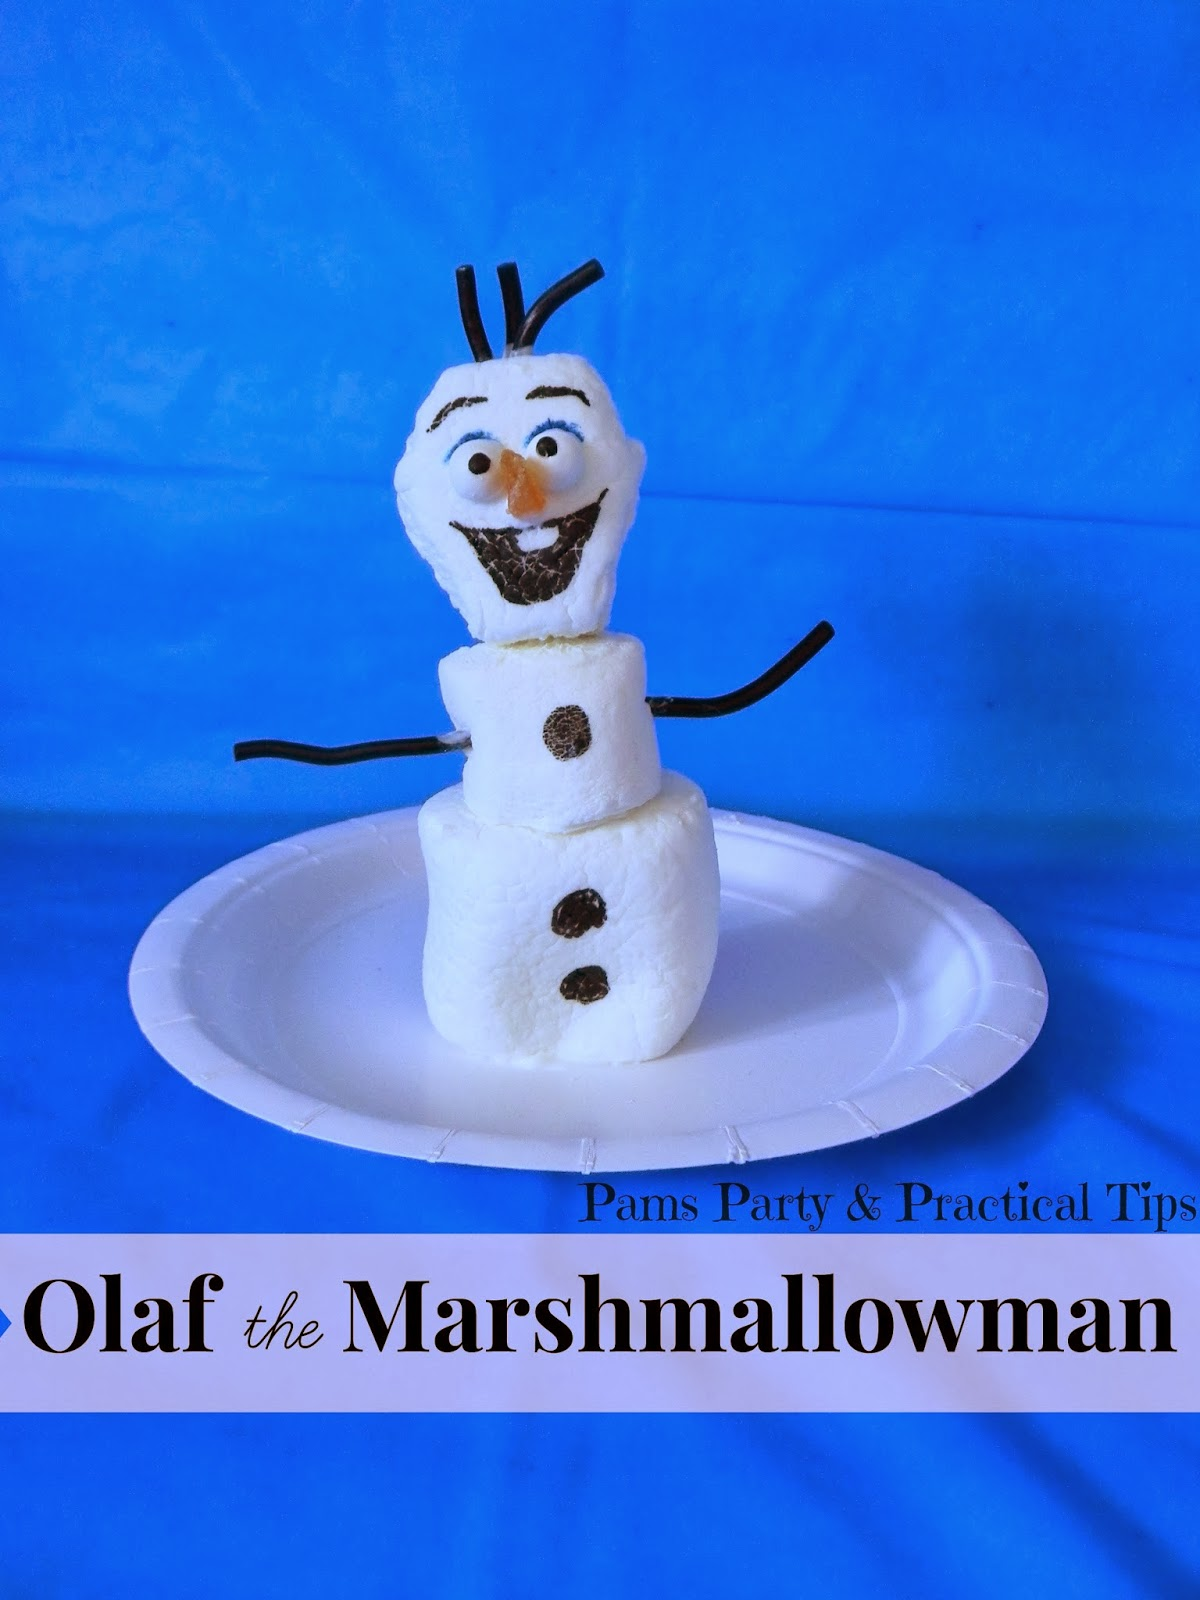 How to make Olaf the Marshmallowman